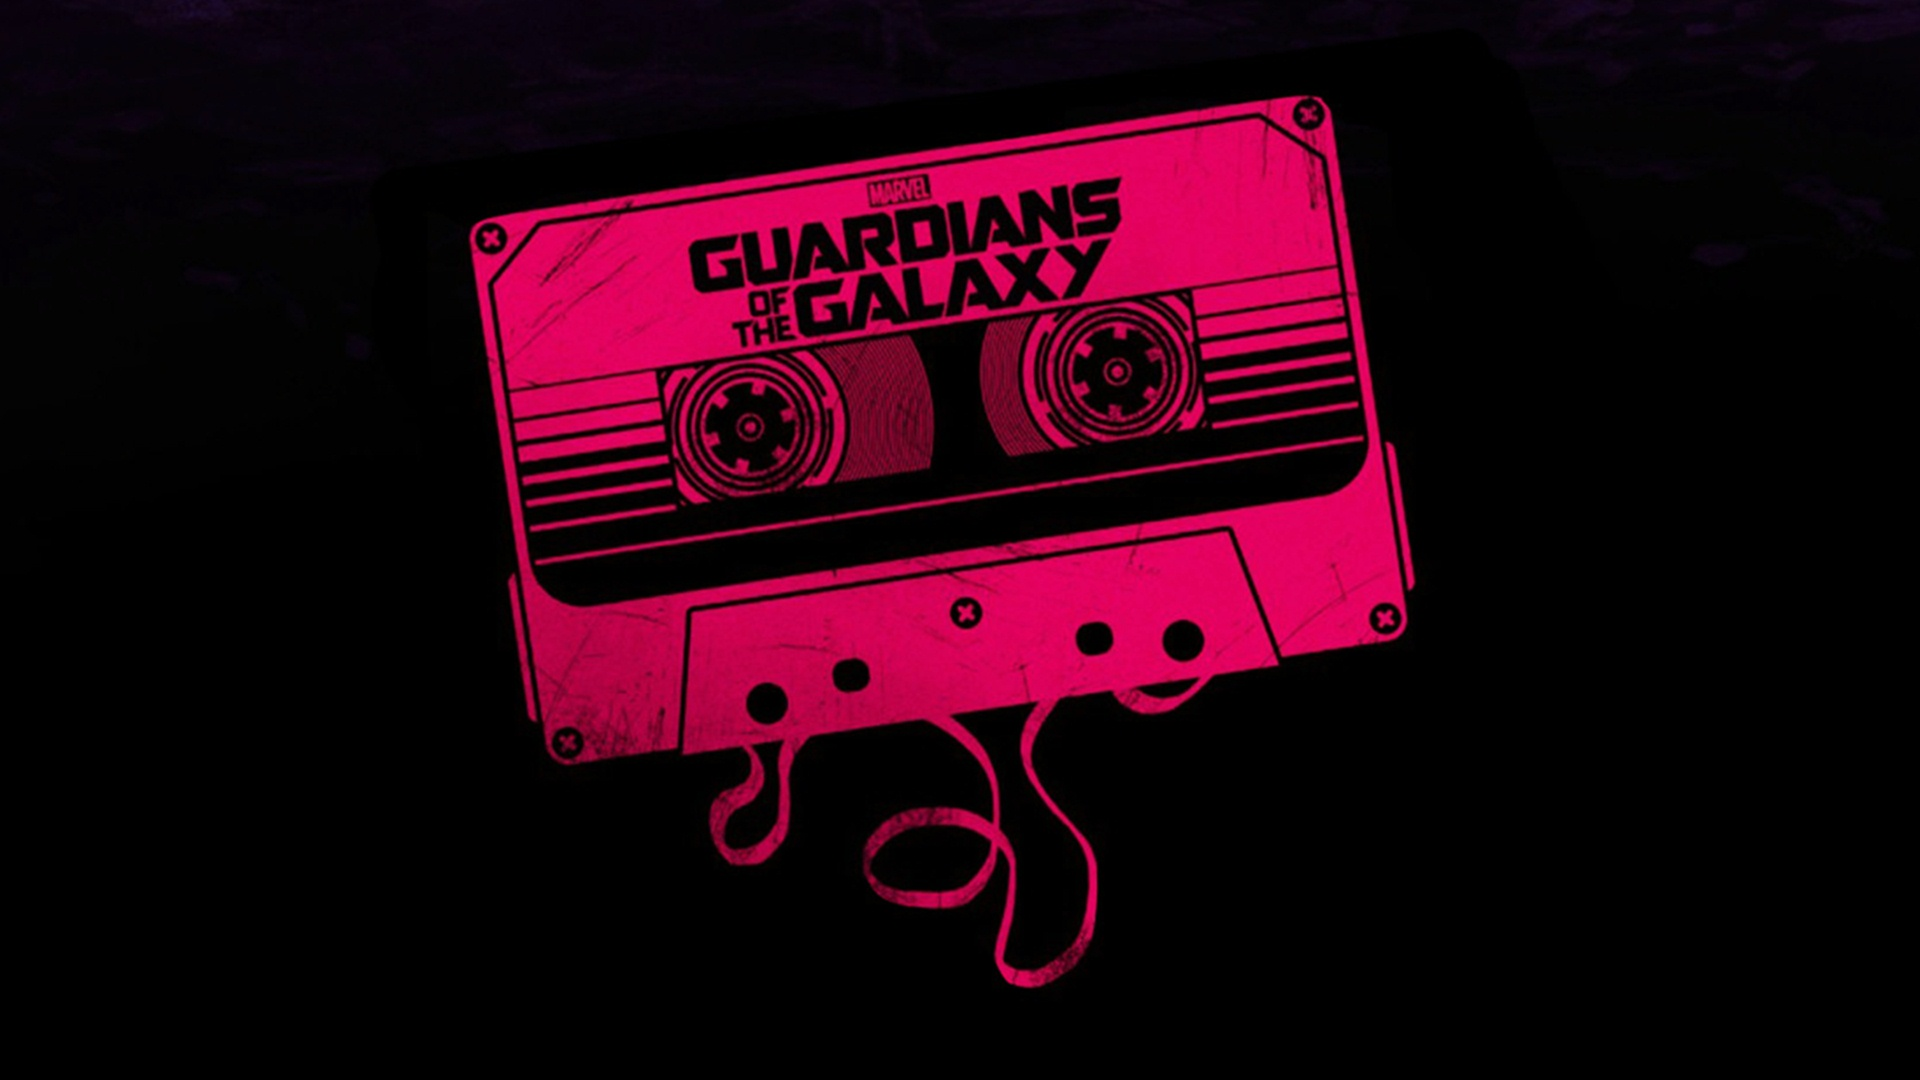 Guardians-of-The-Galaxy-Marvel-Cassette-HD-1920×1080-wallpaper-wp3606453